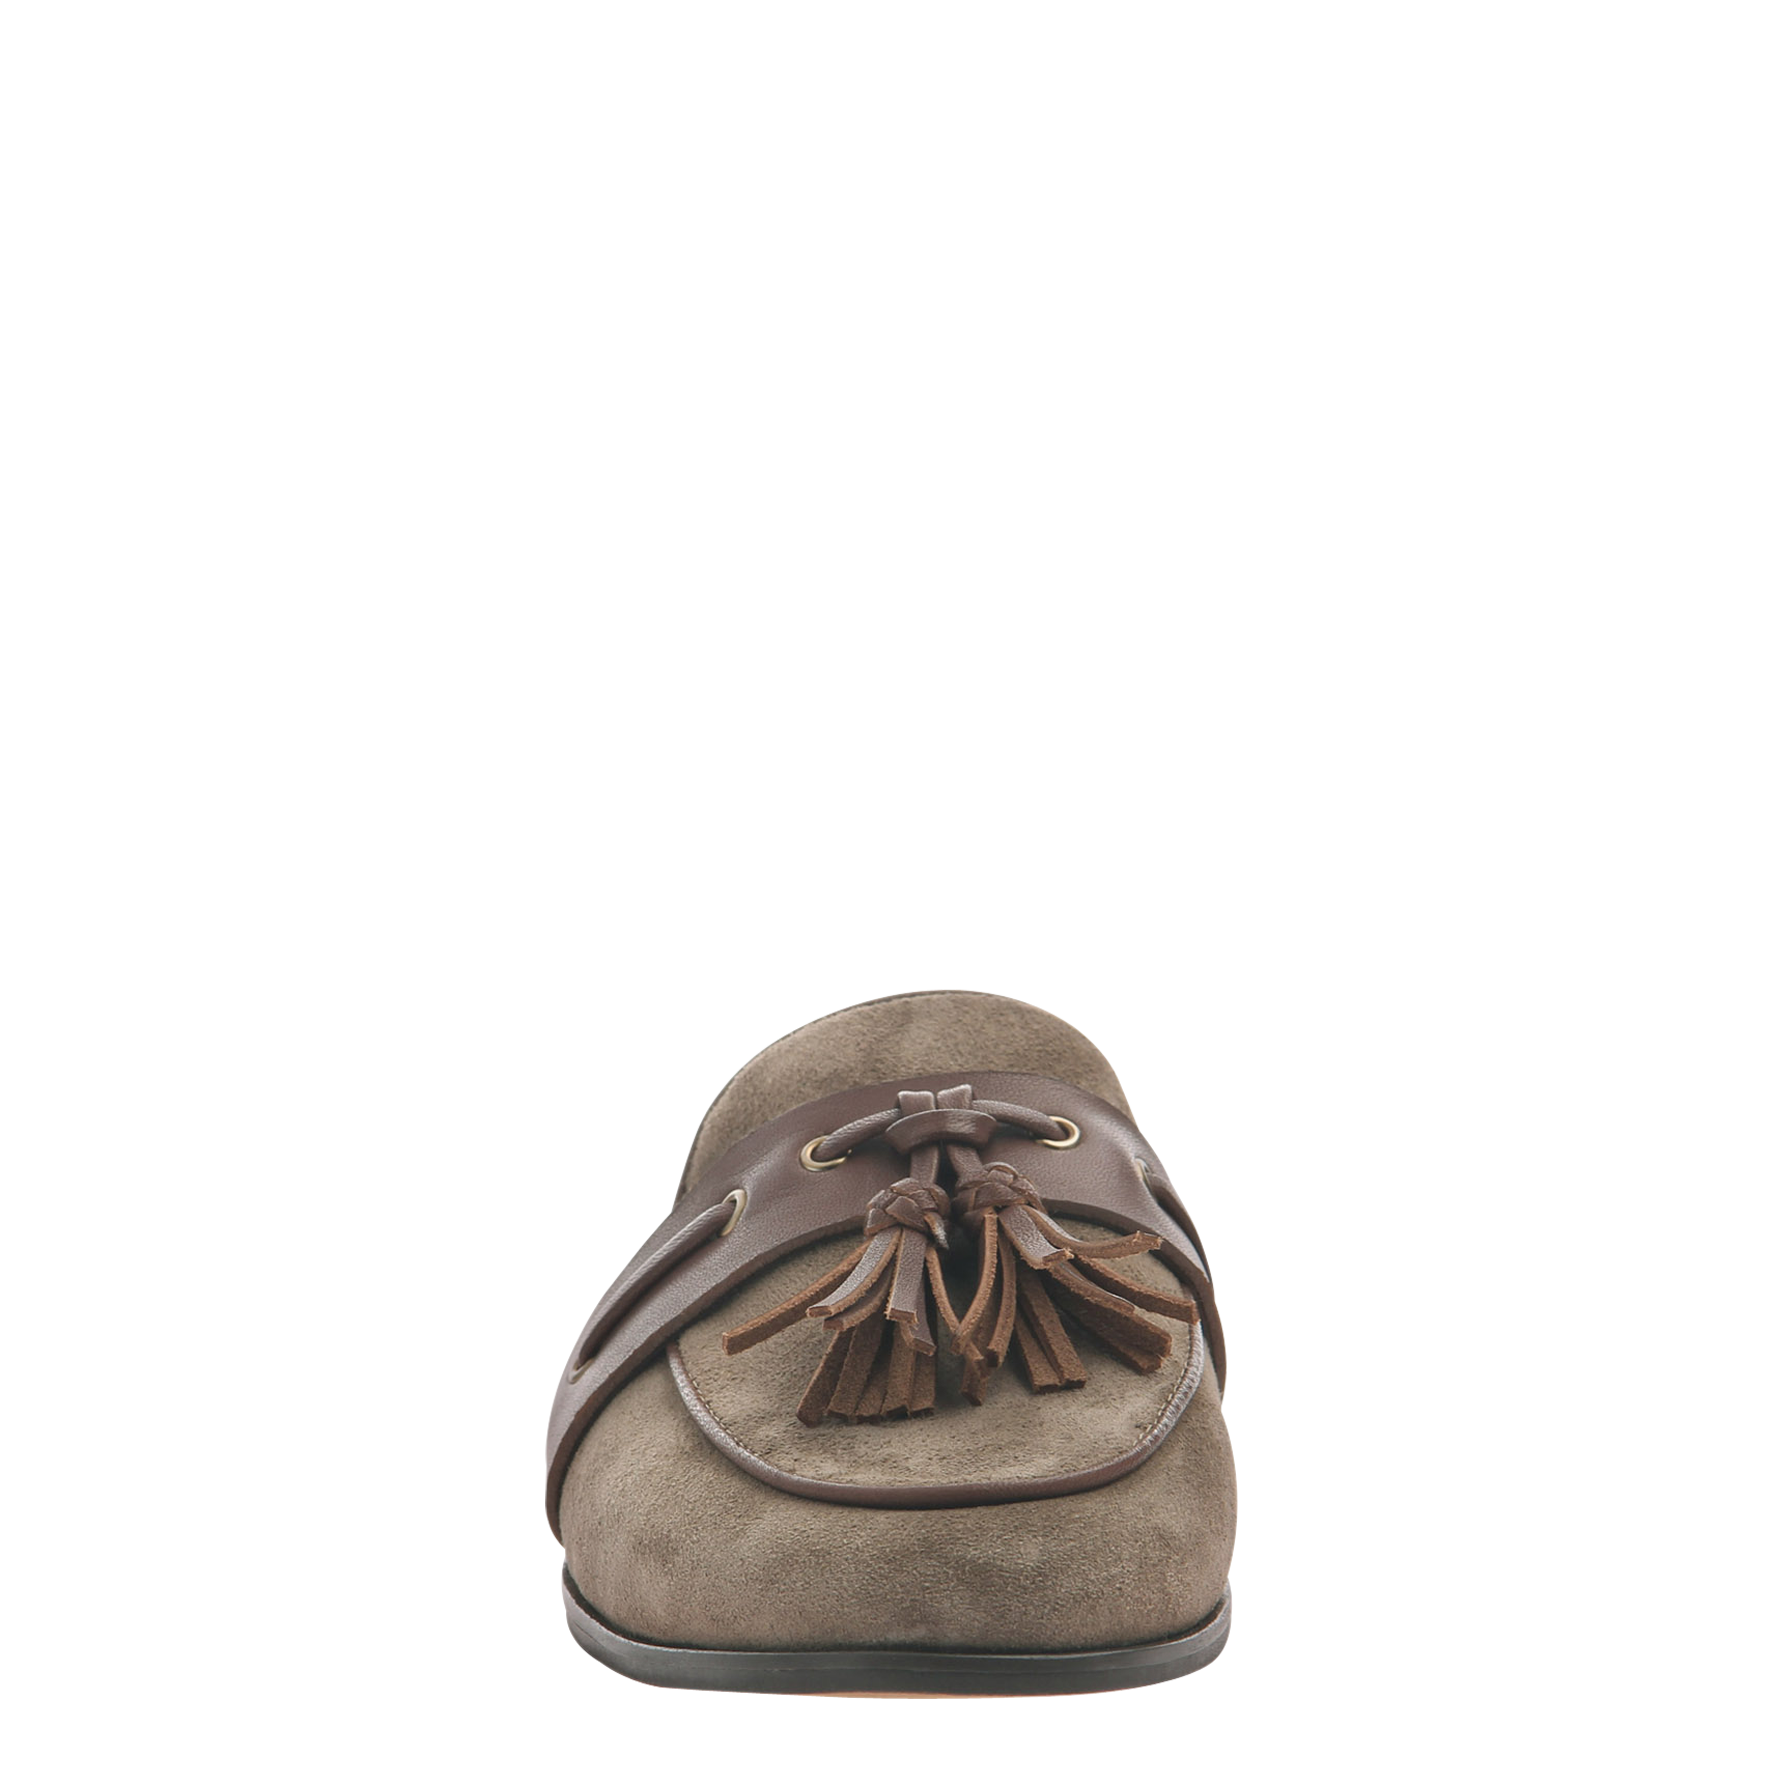 Womens slip on loafer Yulia in otter front view